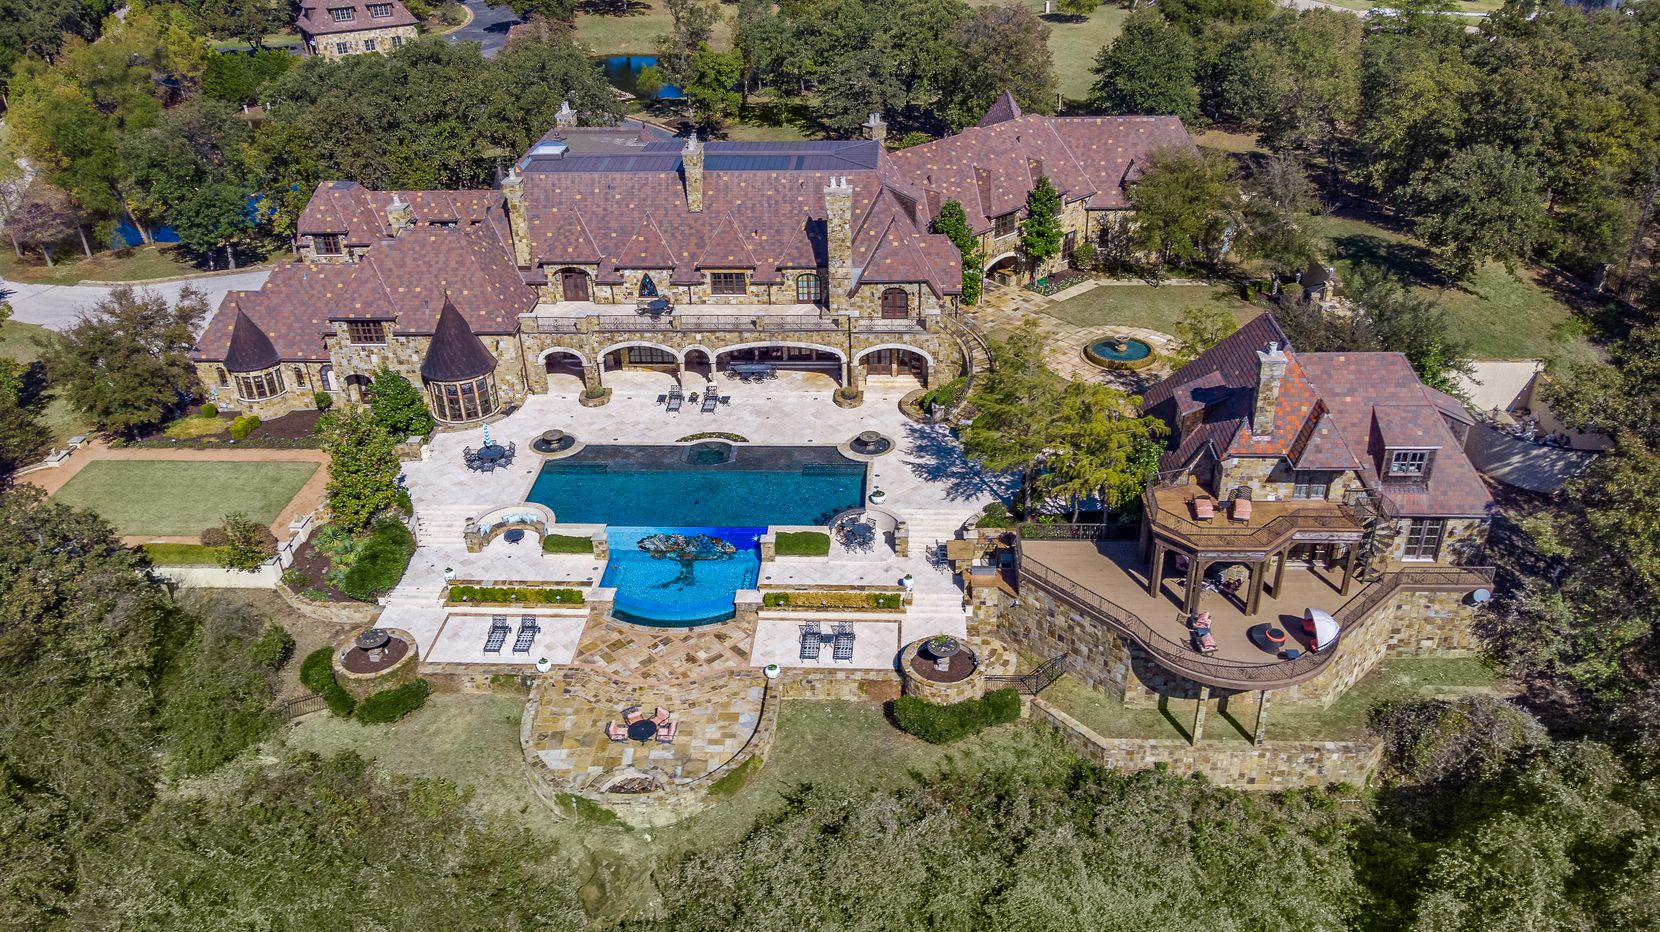 A look at the property at 1808 Point De Vue Drive in Flower Mound.